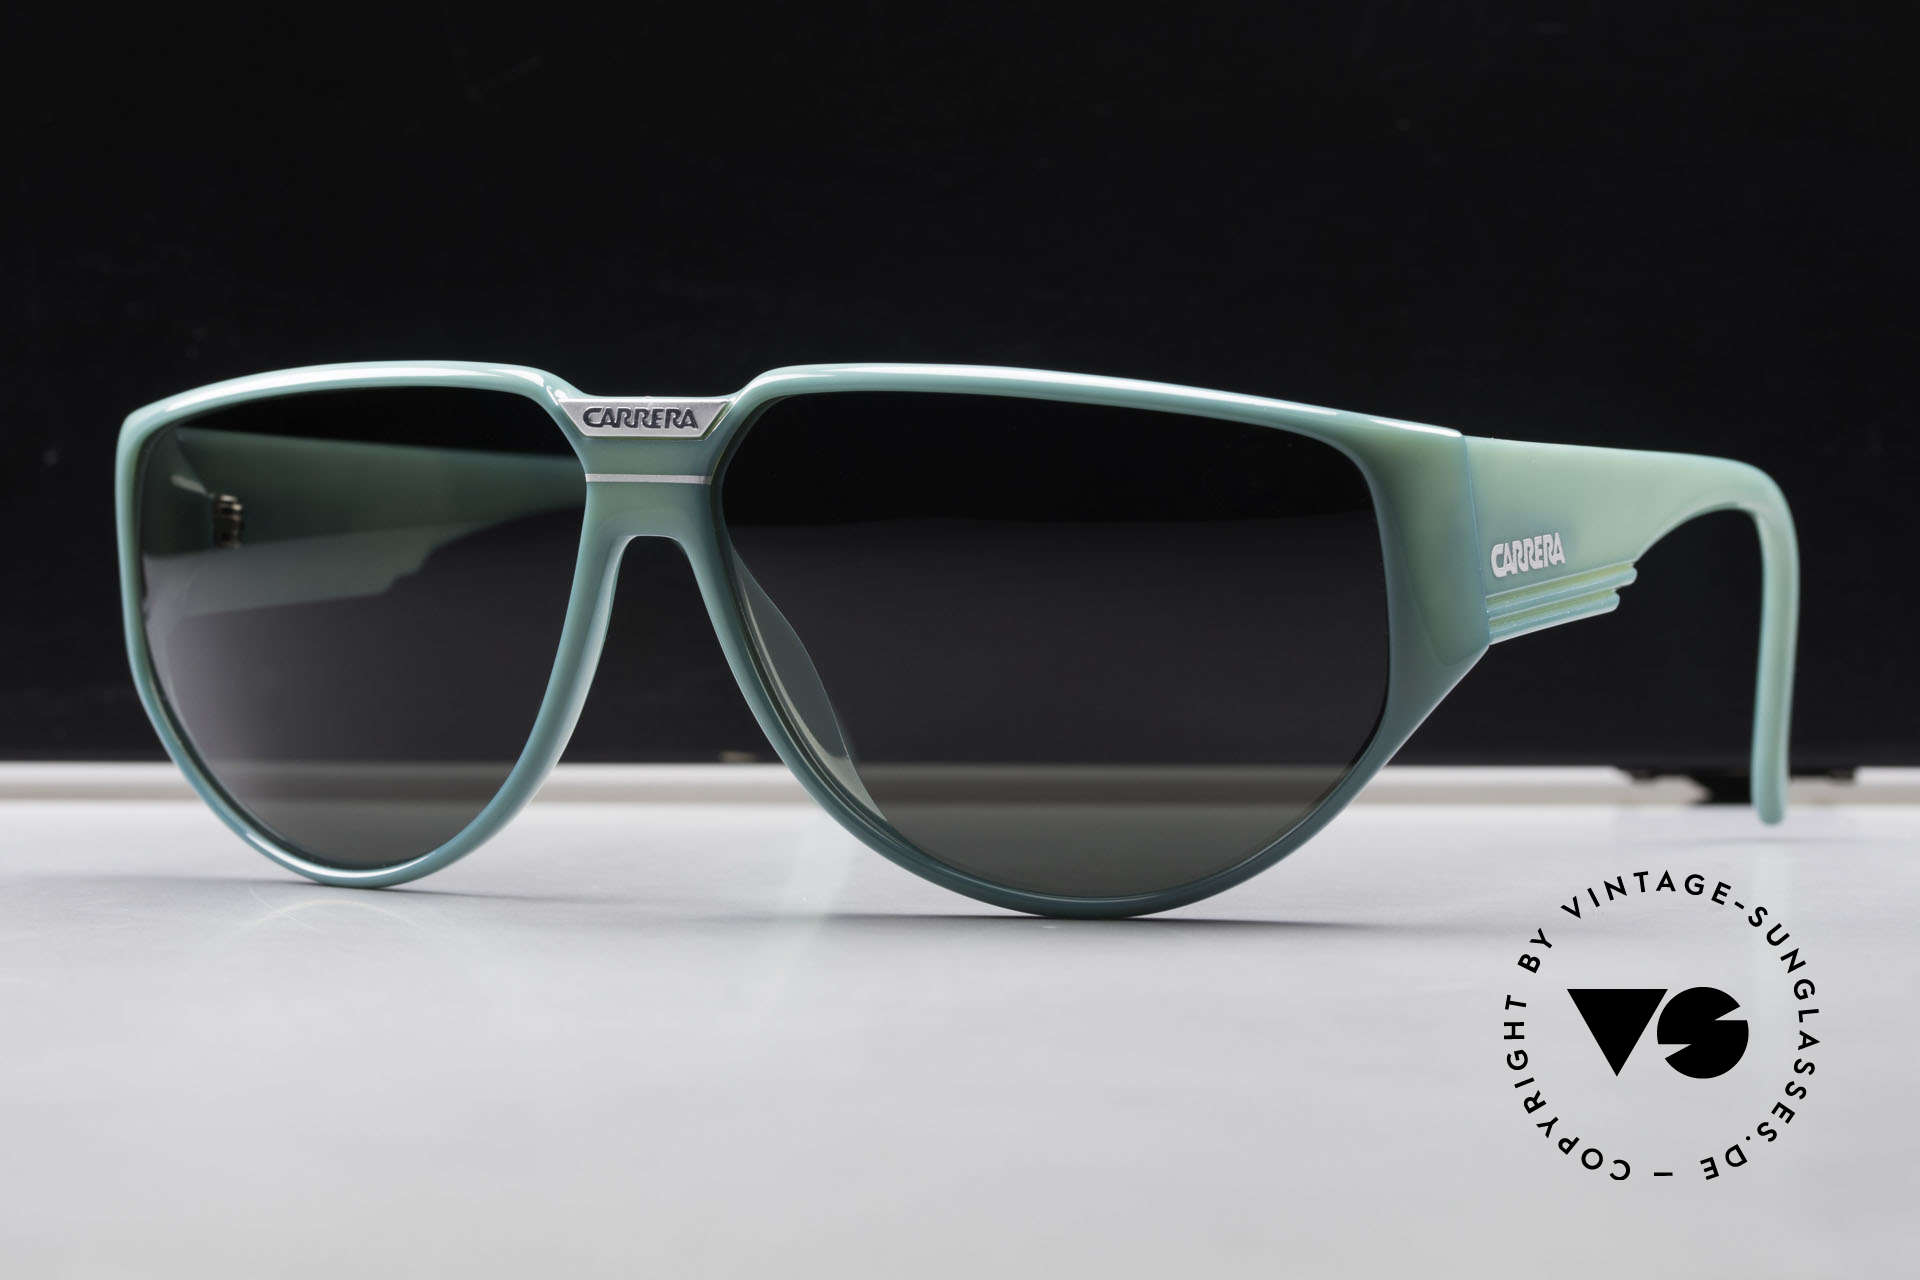 Carrera 5417 Vintage 80's Sports Sunglasses, TOP quality, thanks to incredible OPTYL material, Made for Men